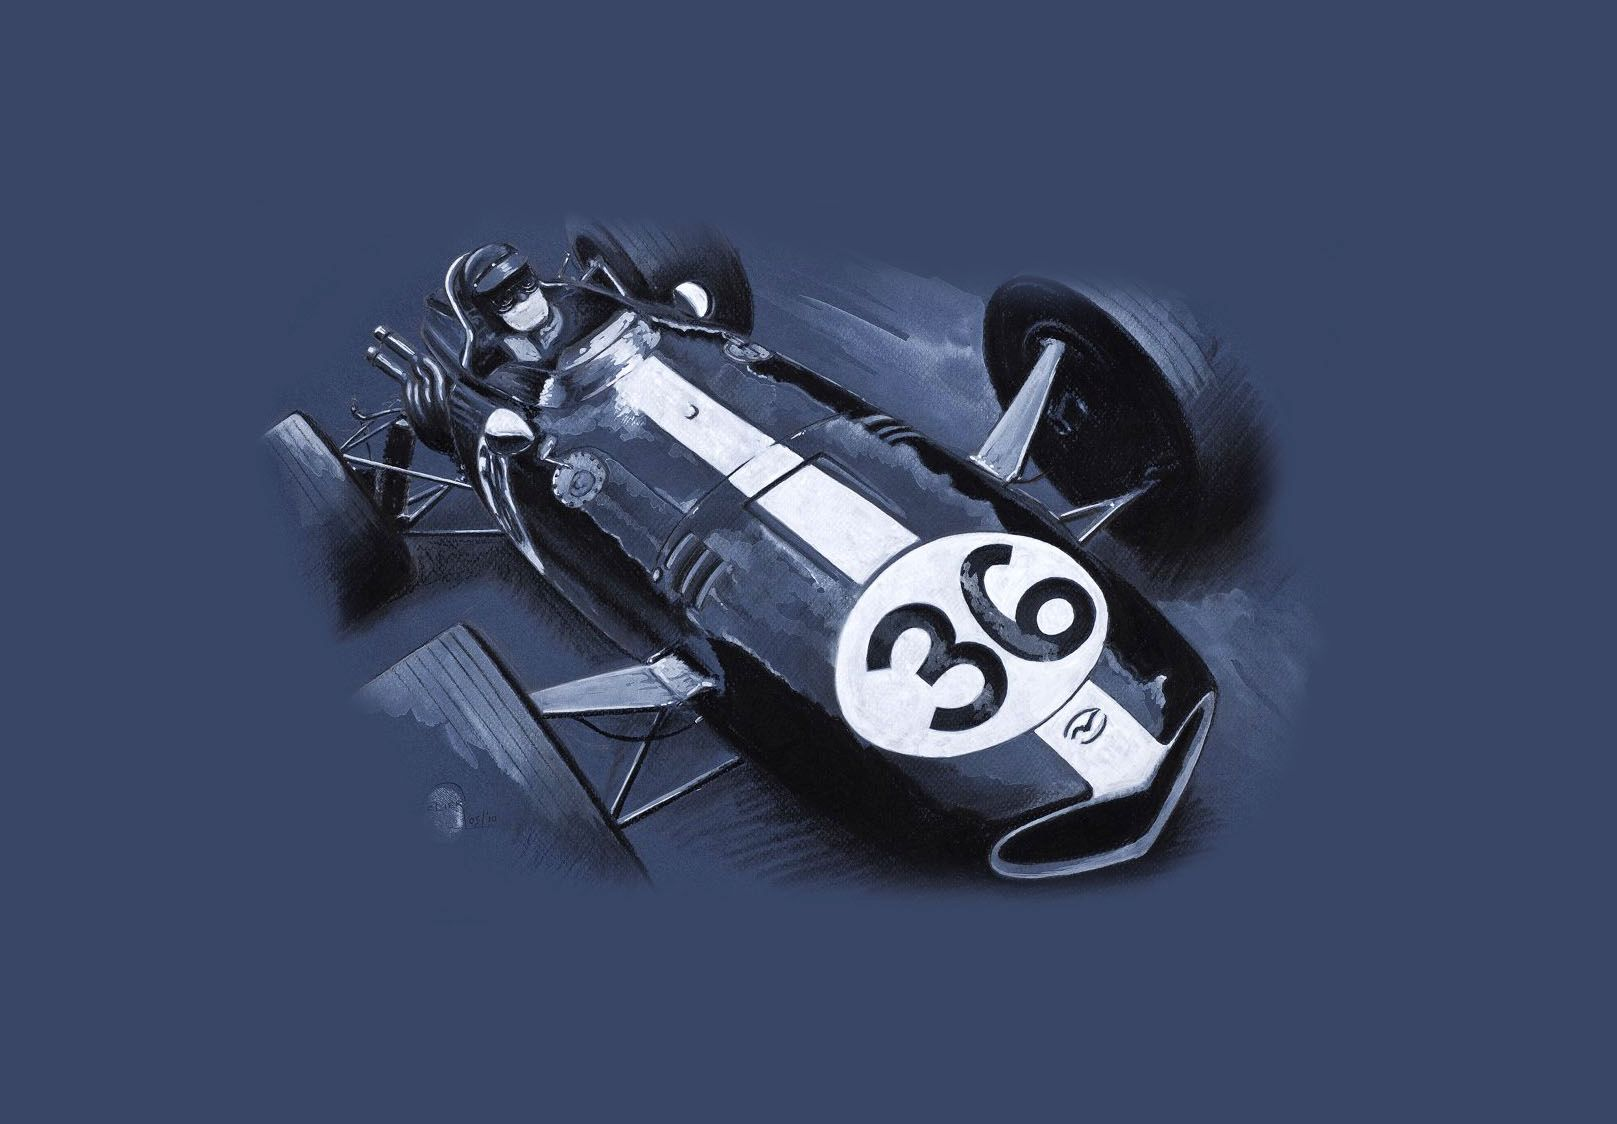 dan gurney spa gp 1967